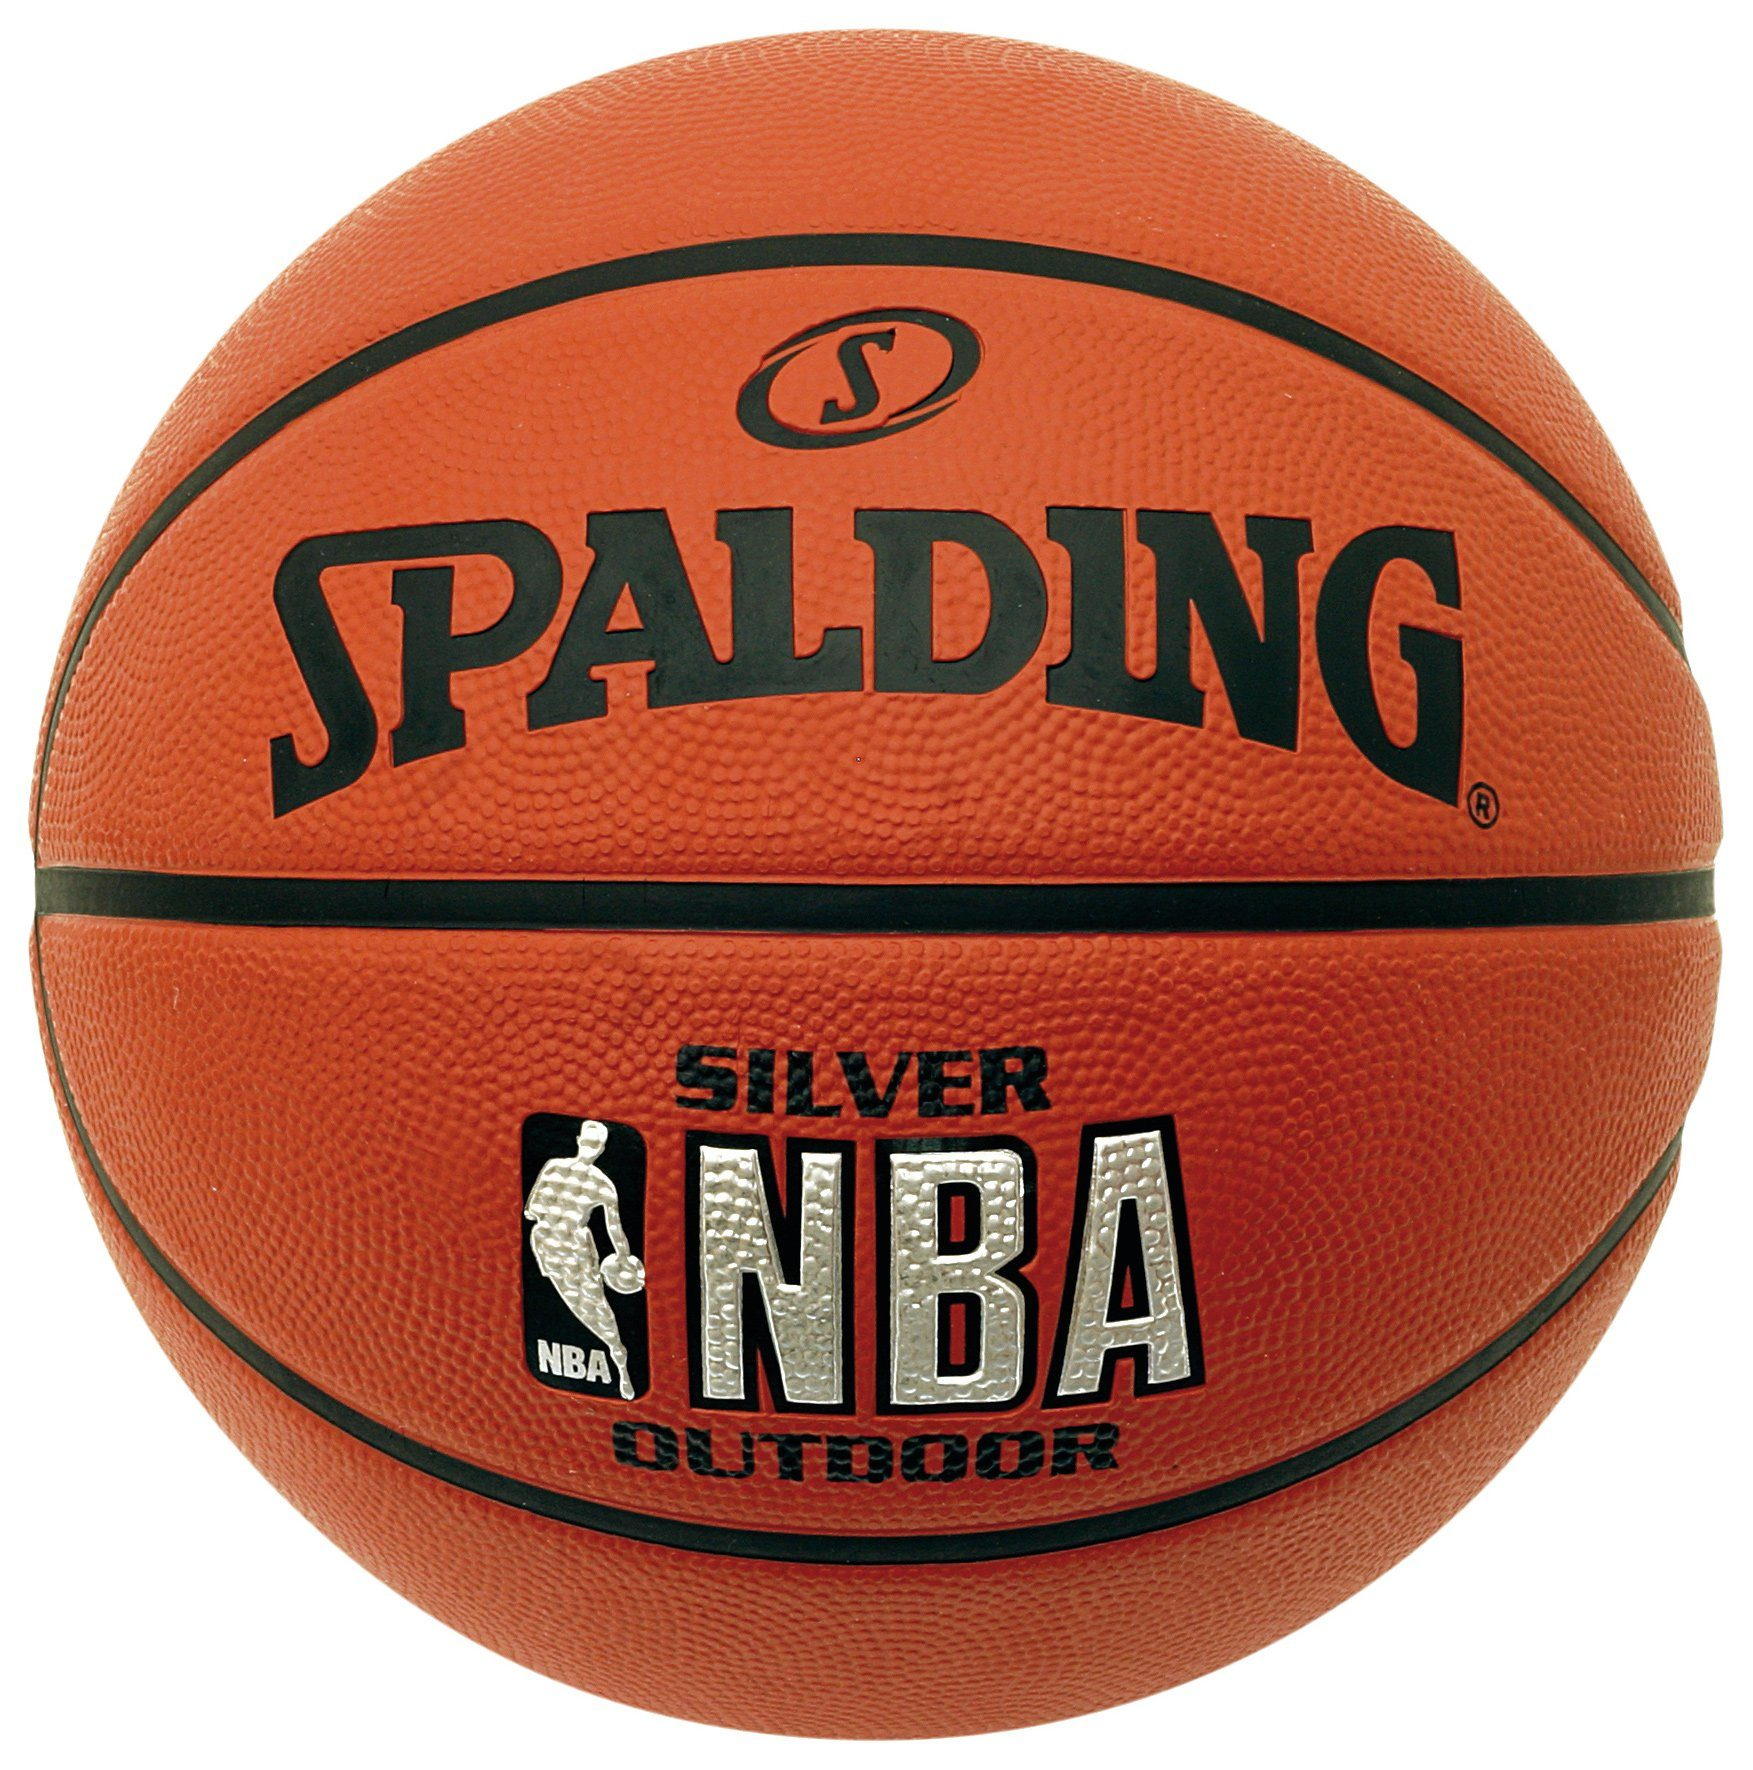 SPALDING NBA Silver Outdoor (73-285Z) Basketball